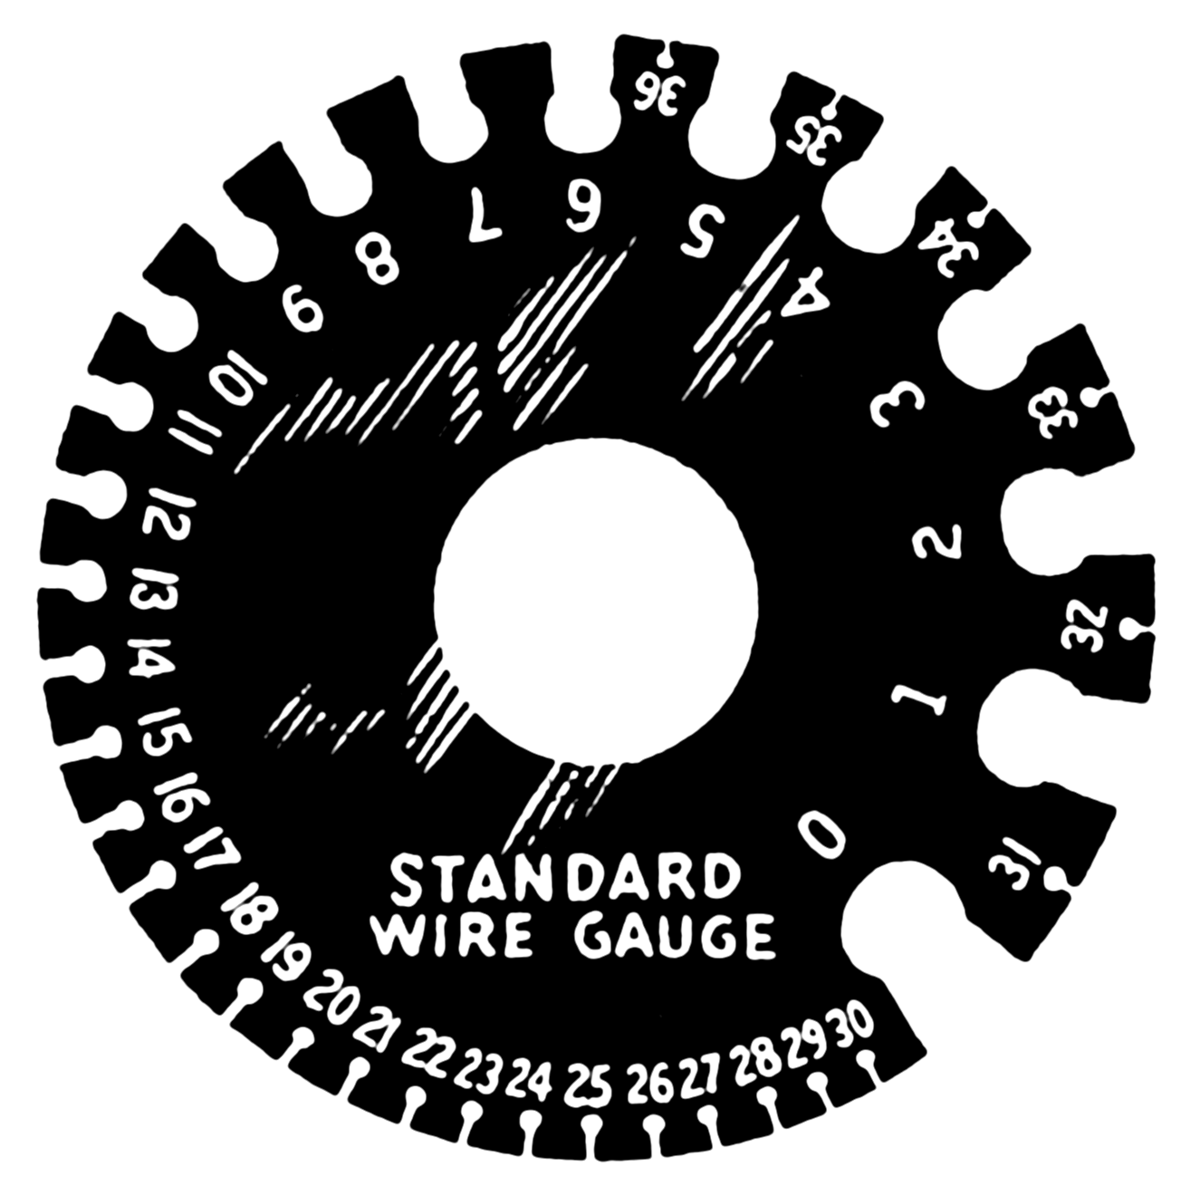 Standard wire gauge wikipedia greentooth Images